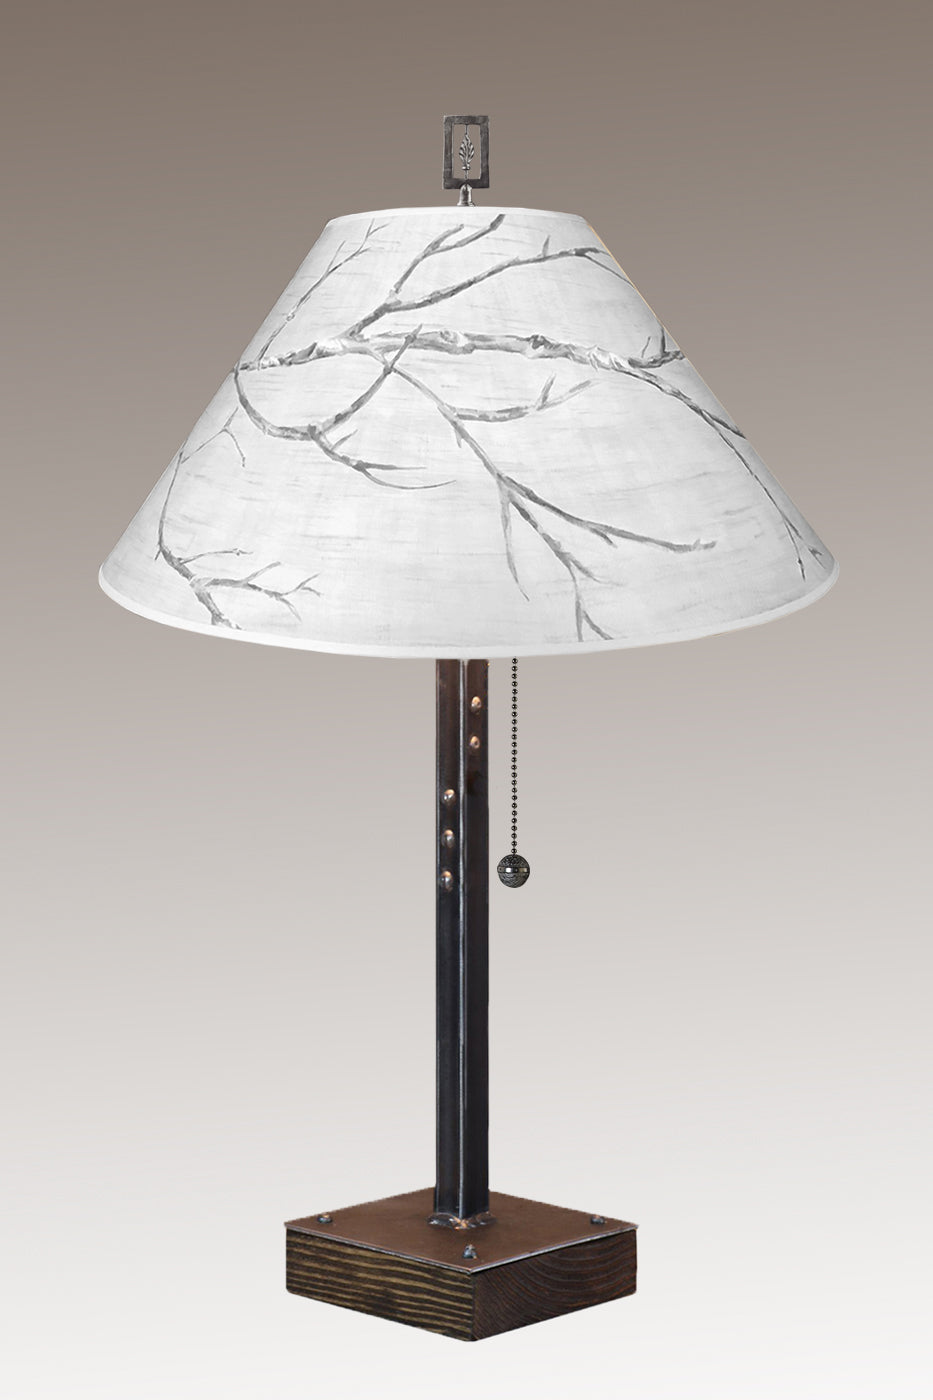 Steel Table Lamp on Wood with Large Conical Shade in Sweeping Branch